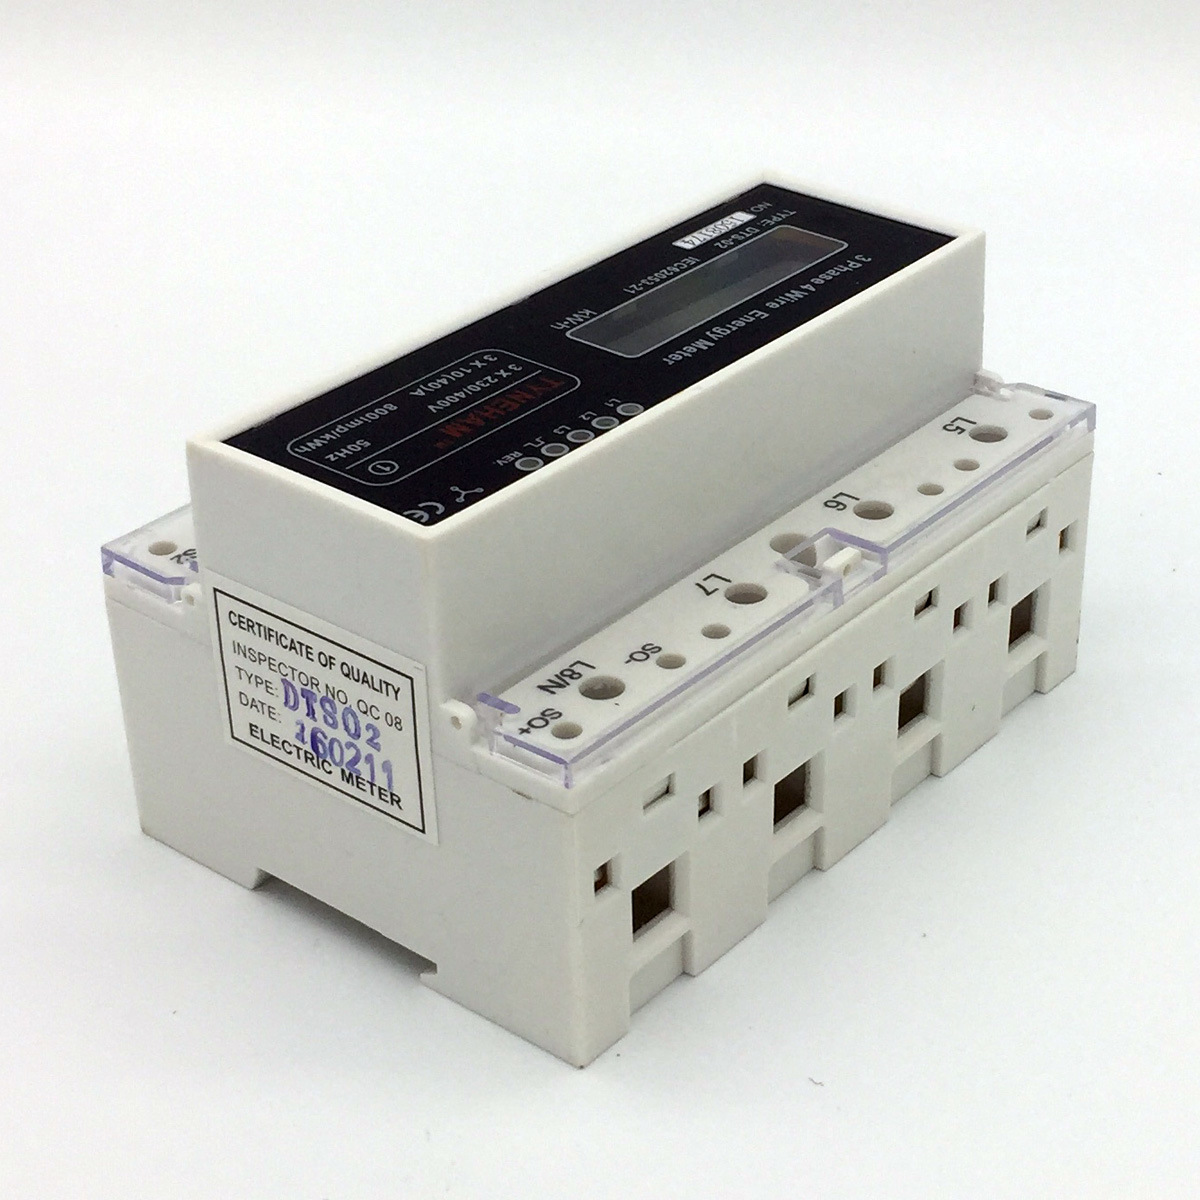 Dts-4 Series DIN Rial Mounted Three Phase Electronic Energy Meter